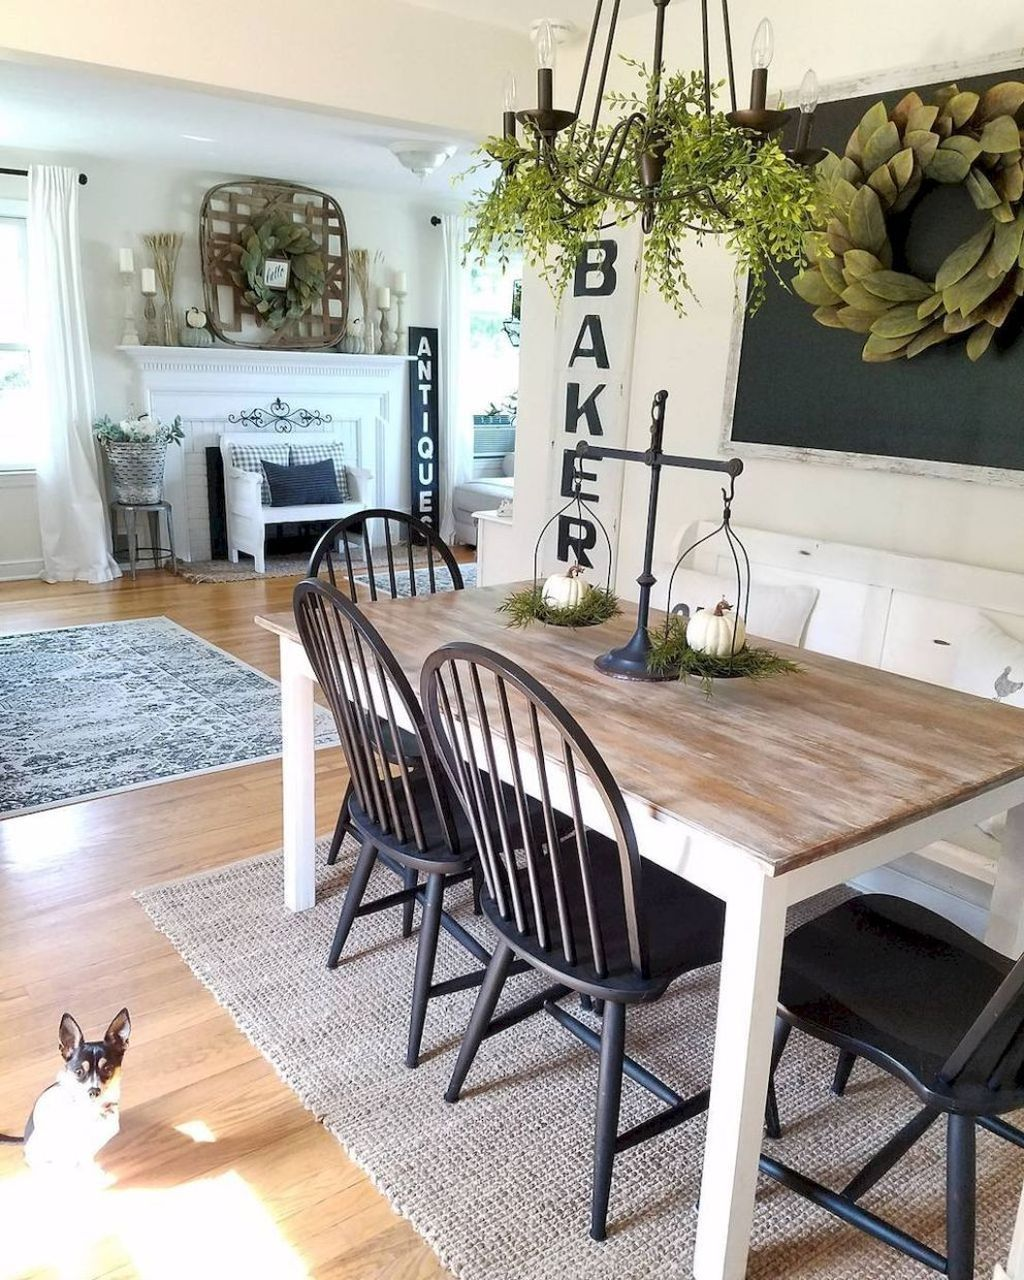 30 Relaxing Farmhouse Dining Room Design Ideas To Try Coodecor Modern Farmhouse Dining Room Farmhouse Dining Rooms Decor Farmhouse Dining Room Table